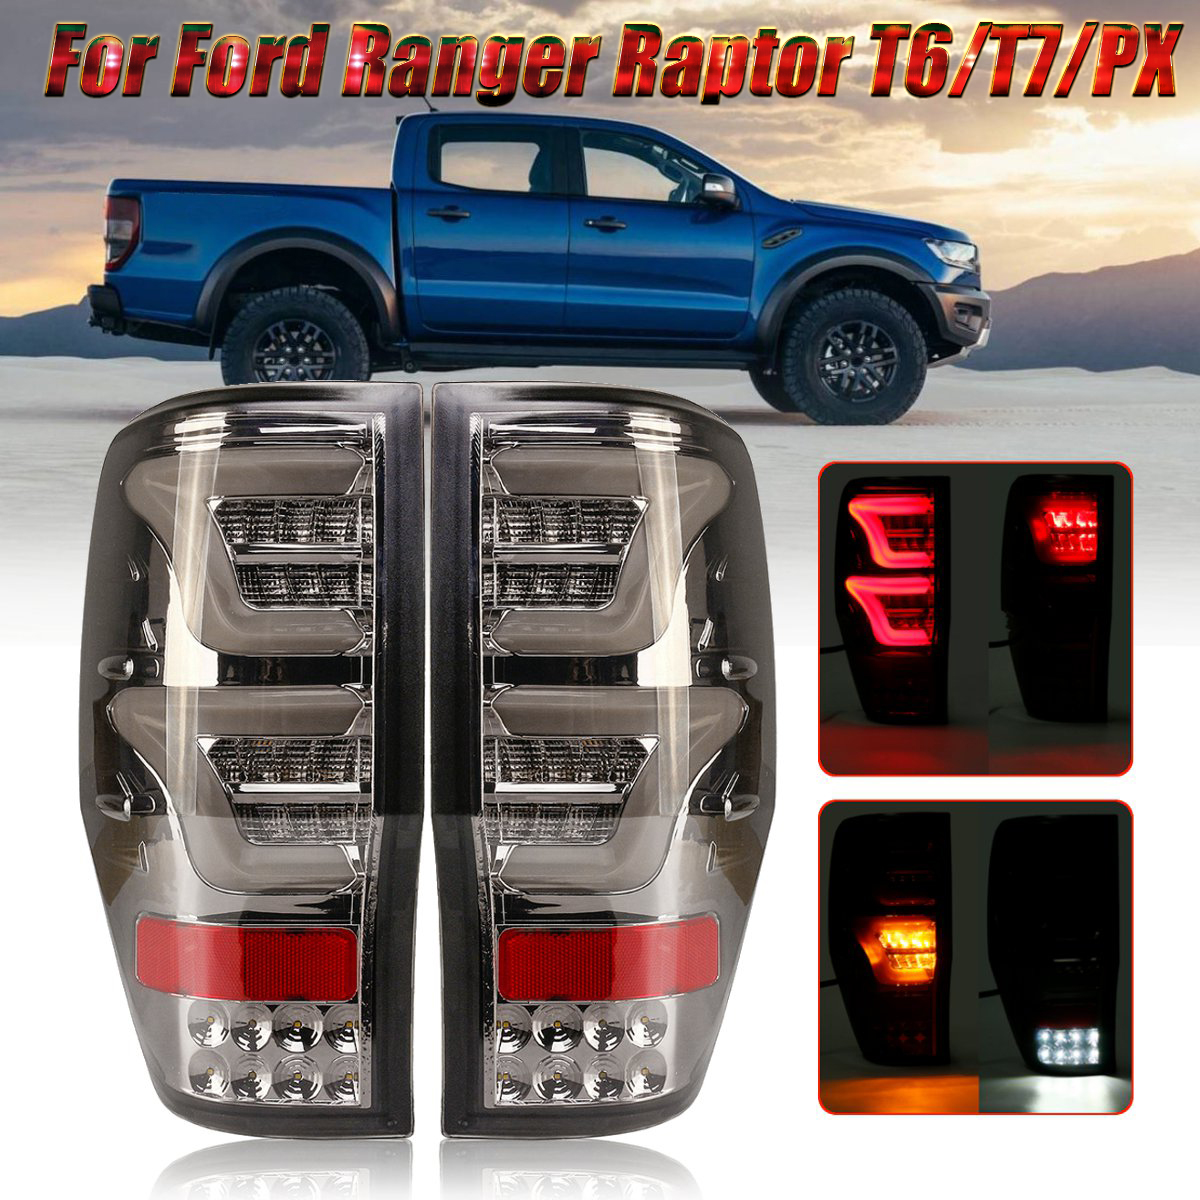 LED Car Tail Light with Bulbs Wiring Smoked Cover for Ford Ranger Raptor T6 T7 PX MK1 MK2 Wildtrak 12-18